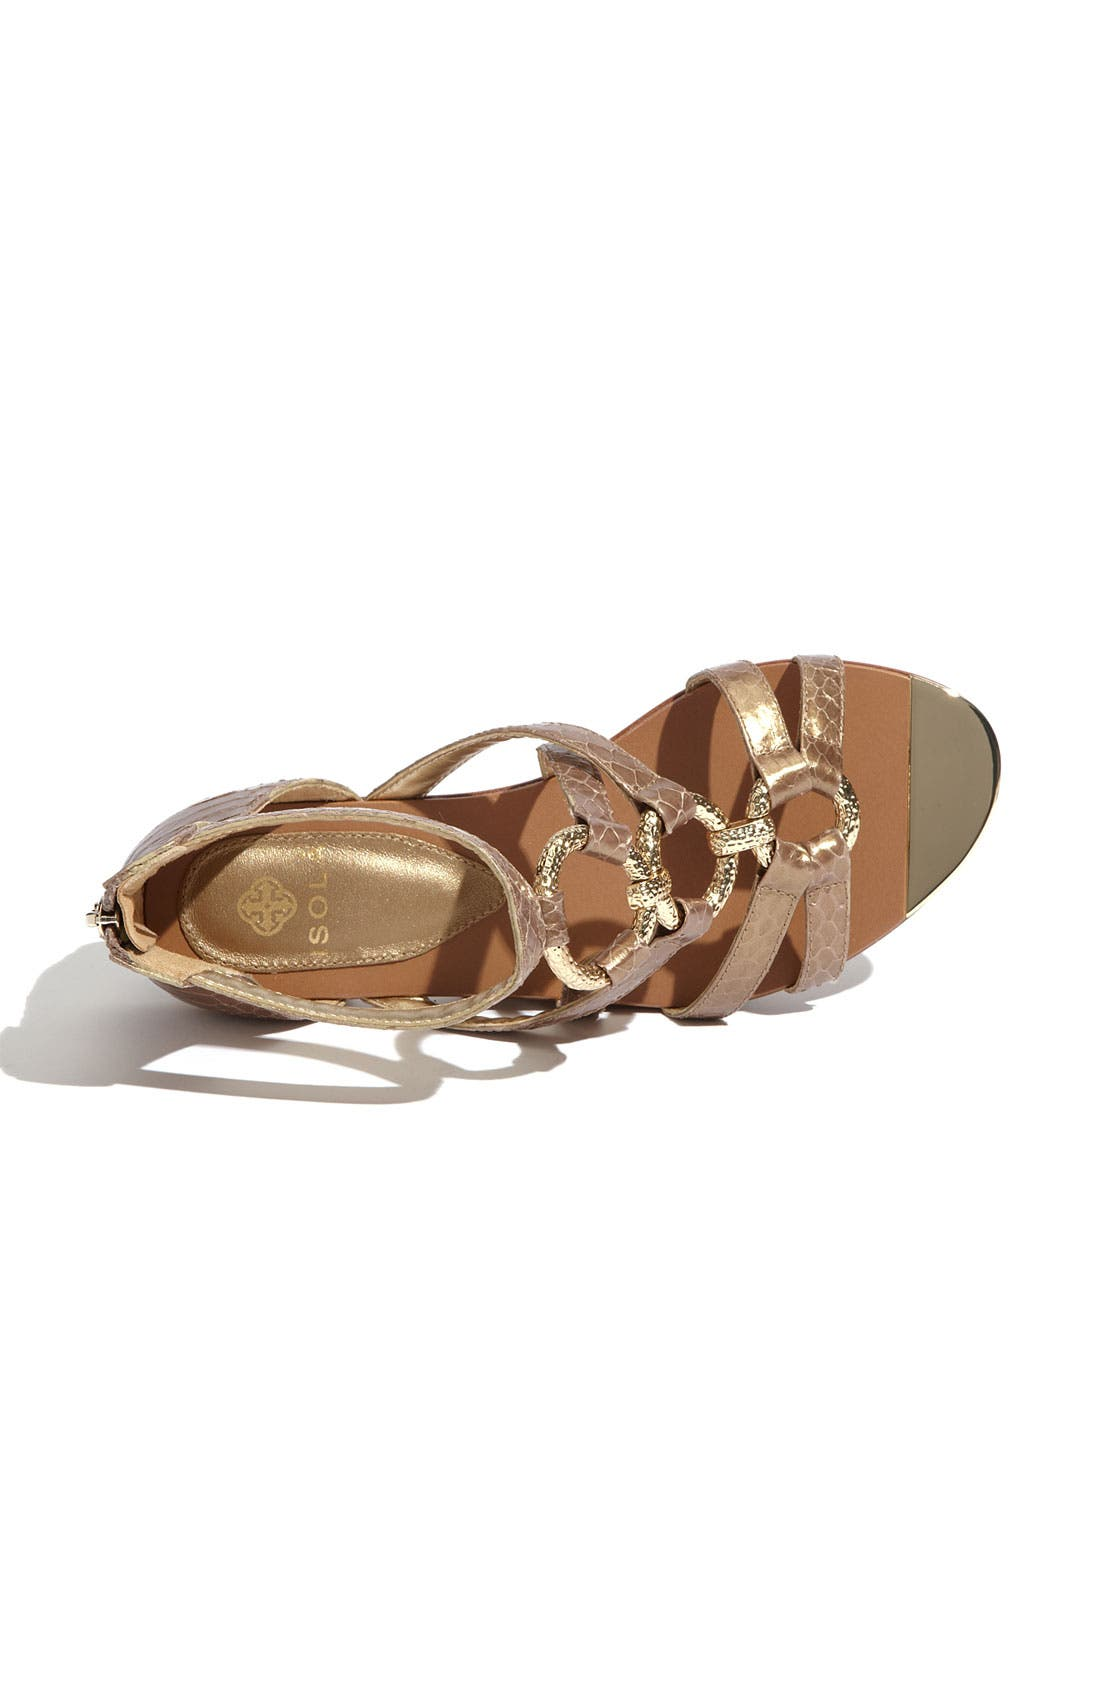 'Adriel' Flat Sandal,                             Alternate thumbnail 3, color,                             Gold Snake